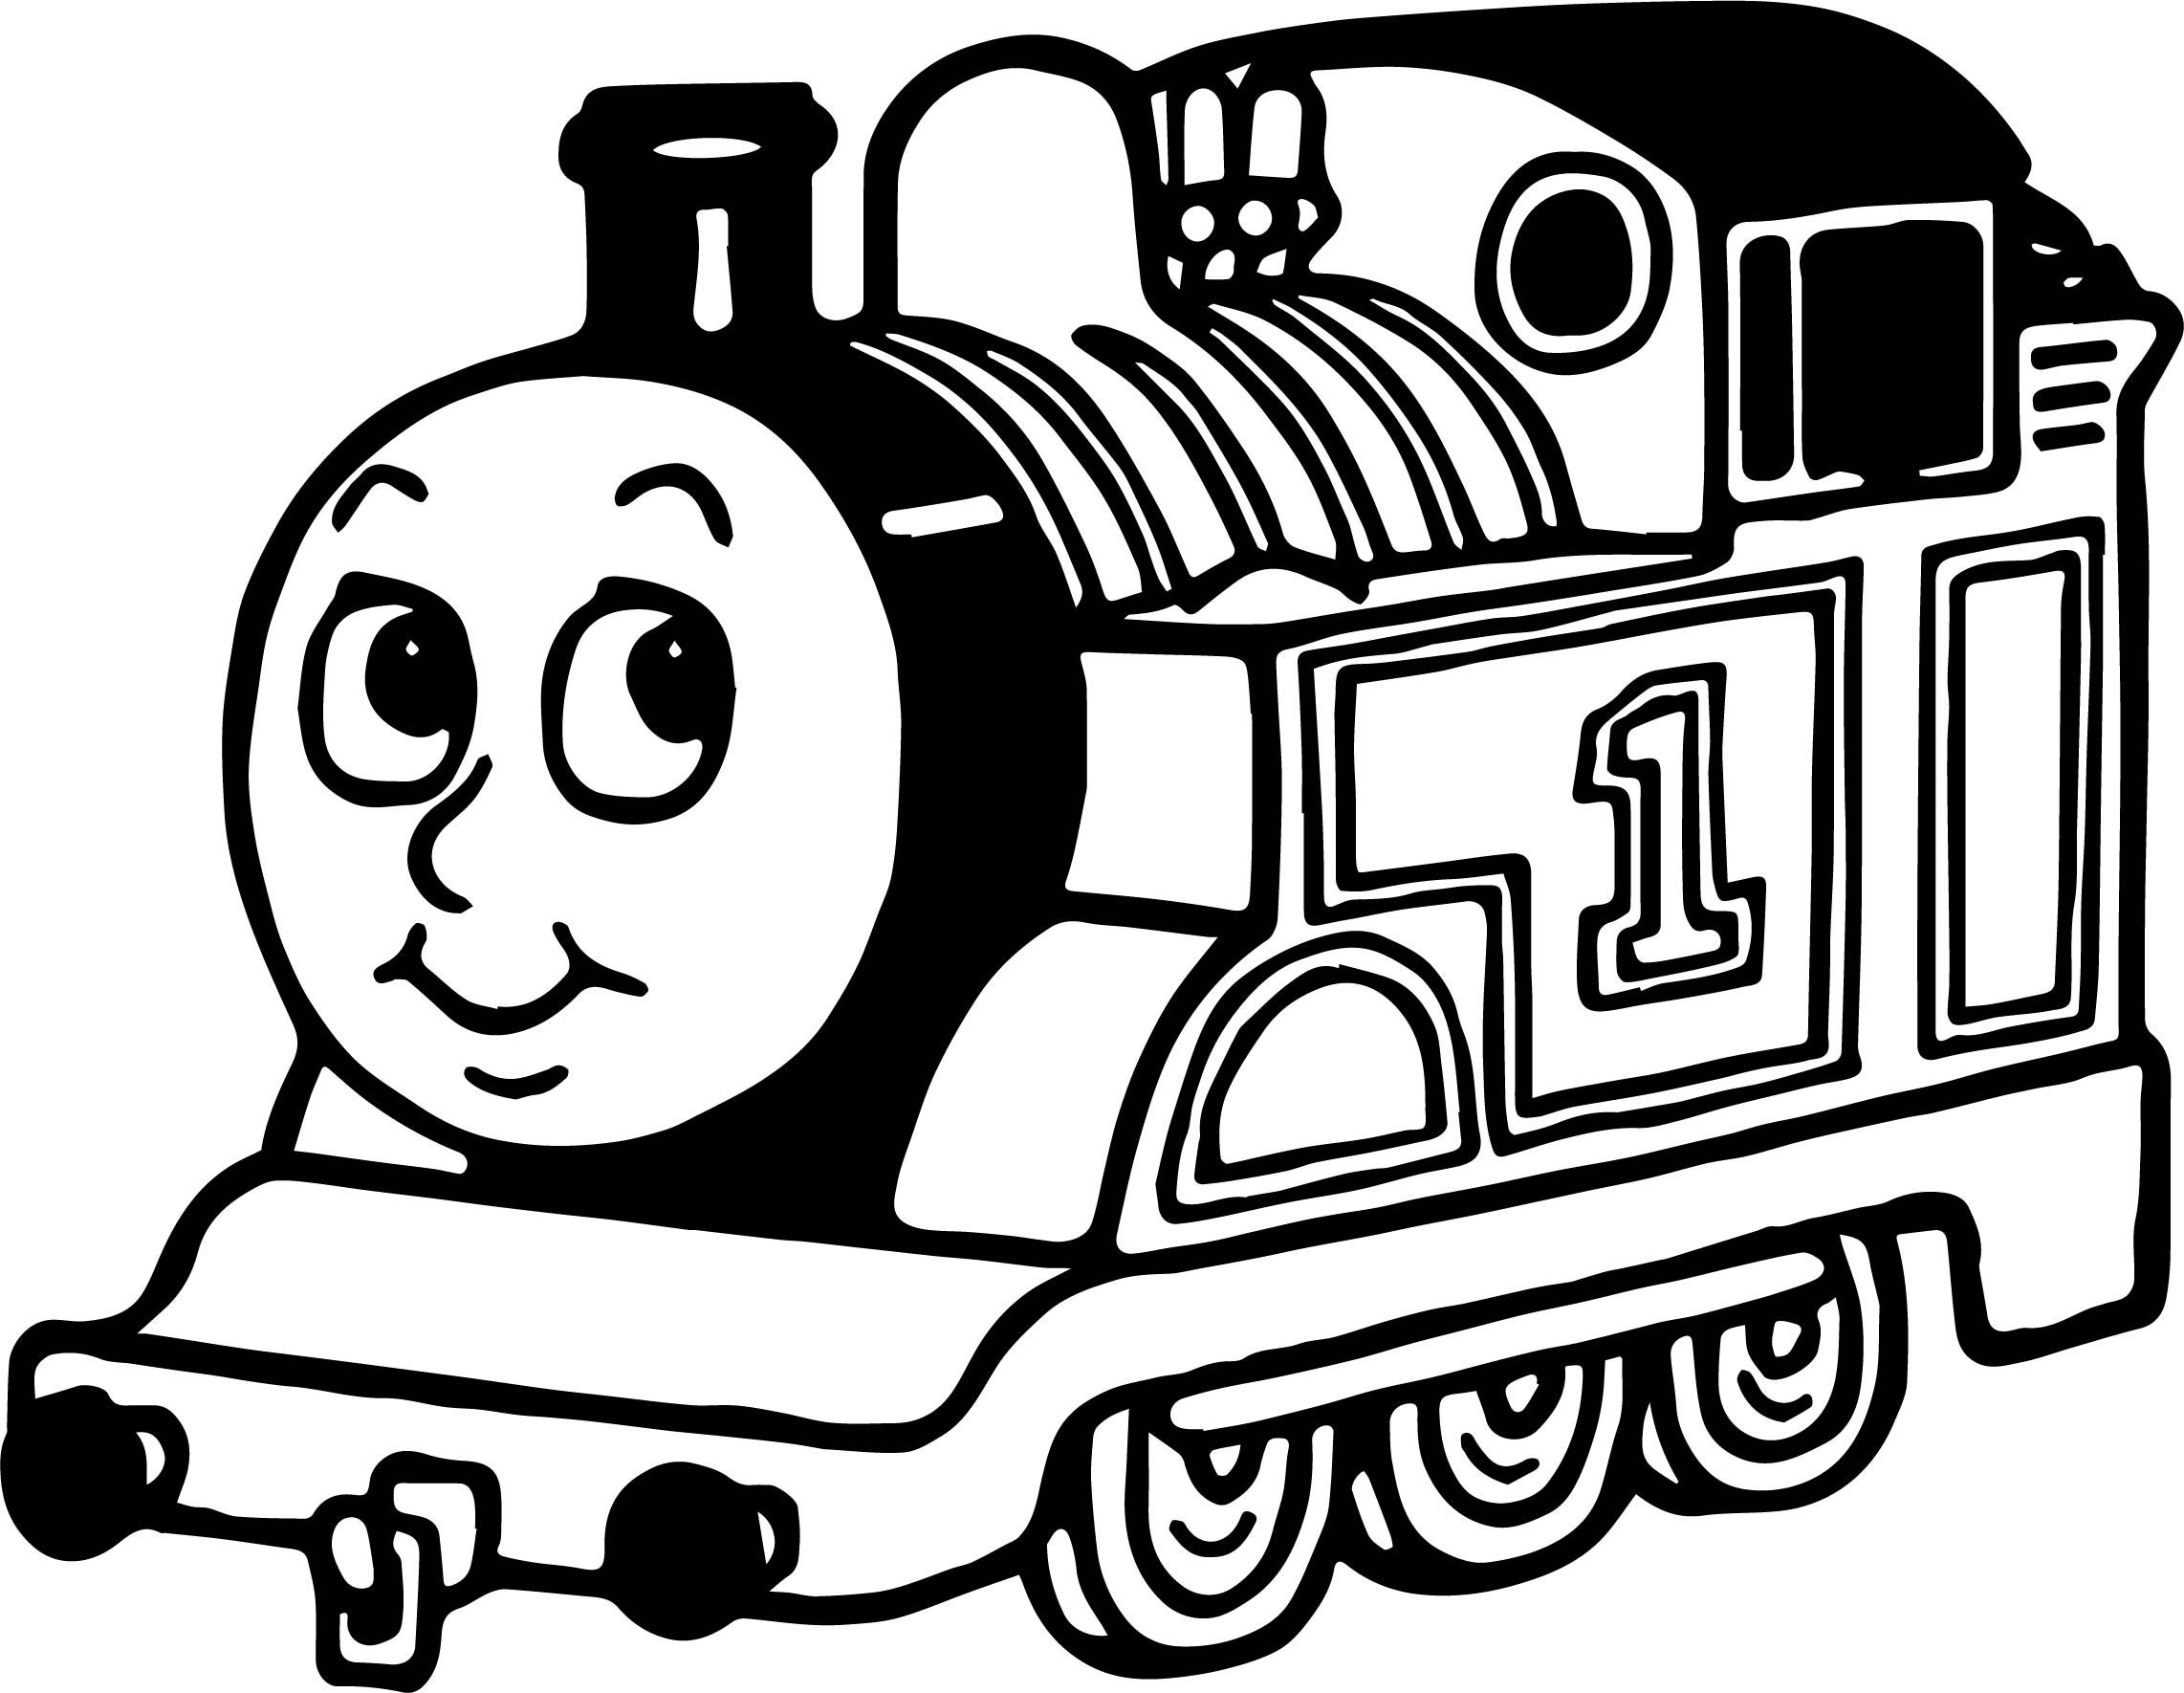 coloring train pages thomas the train coloring pages free bestappsforkidscom train pages coloring